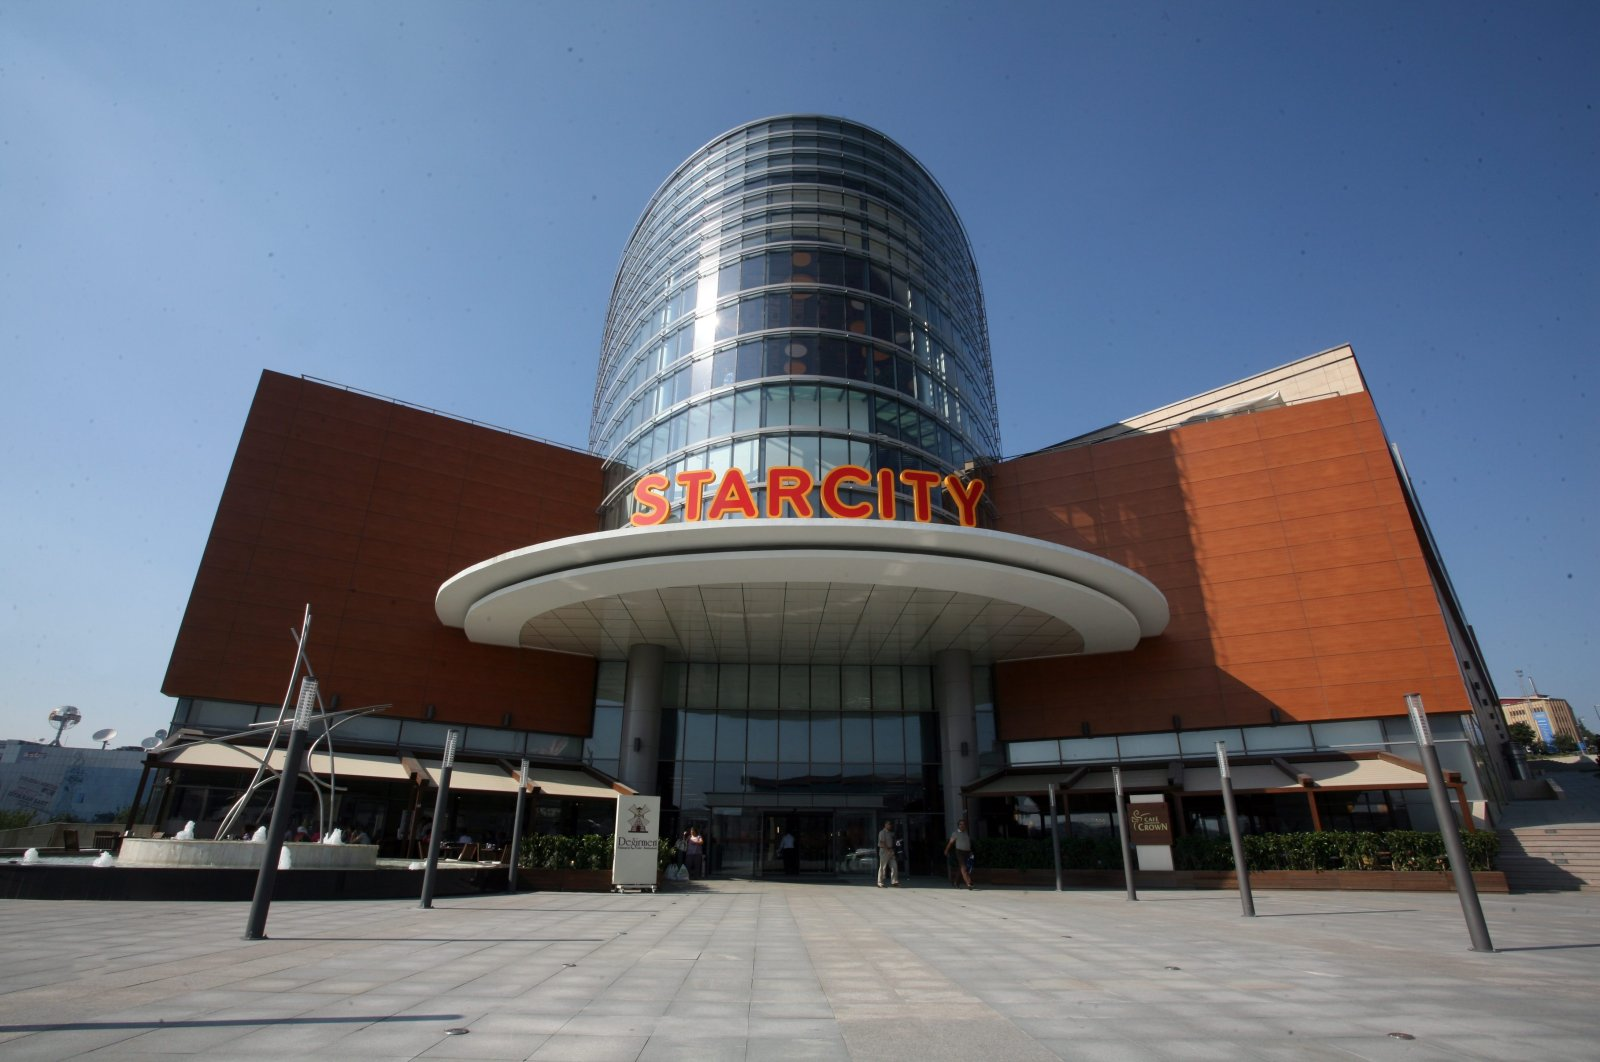 One of Istanbul's most prominent malls, Starcity, in the Bahçelievler district. English names are frequently used in shopping malls, according to the report by the Turkish Language Association (TDK).